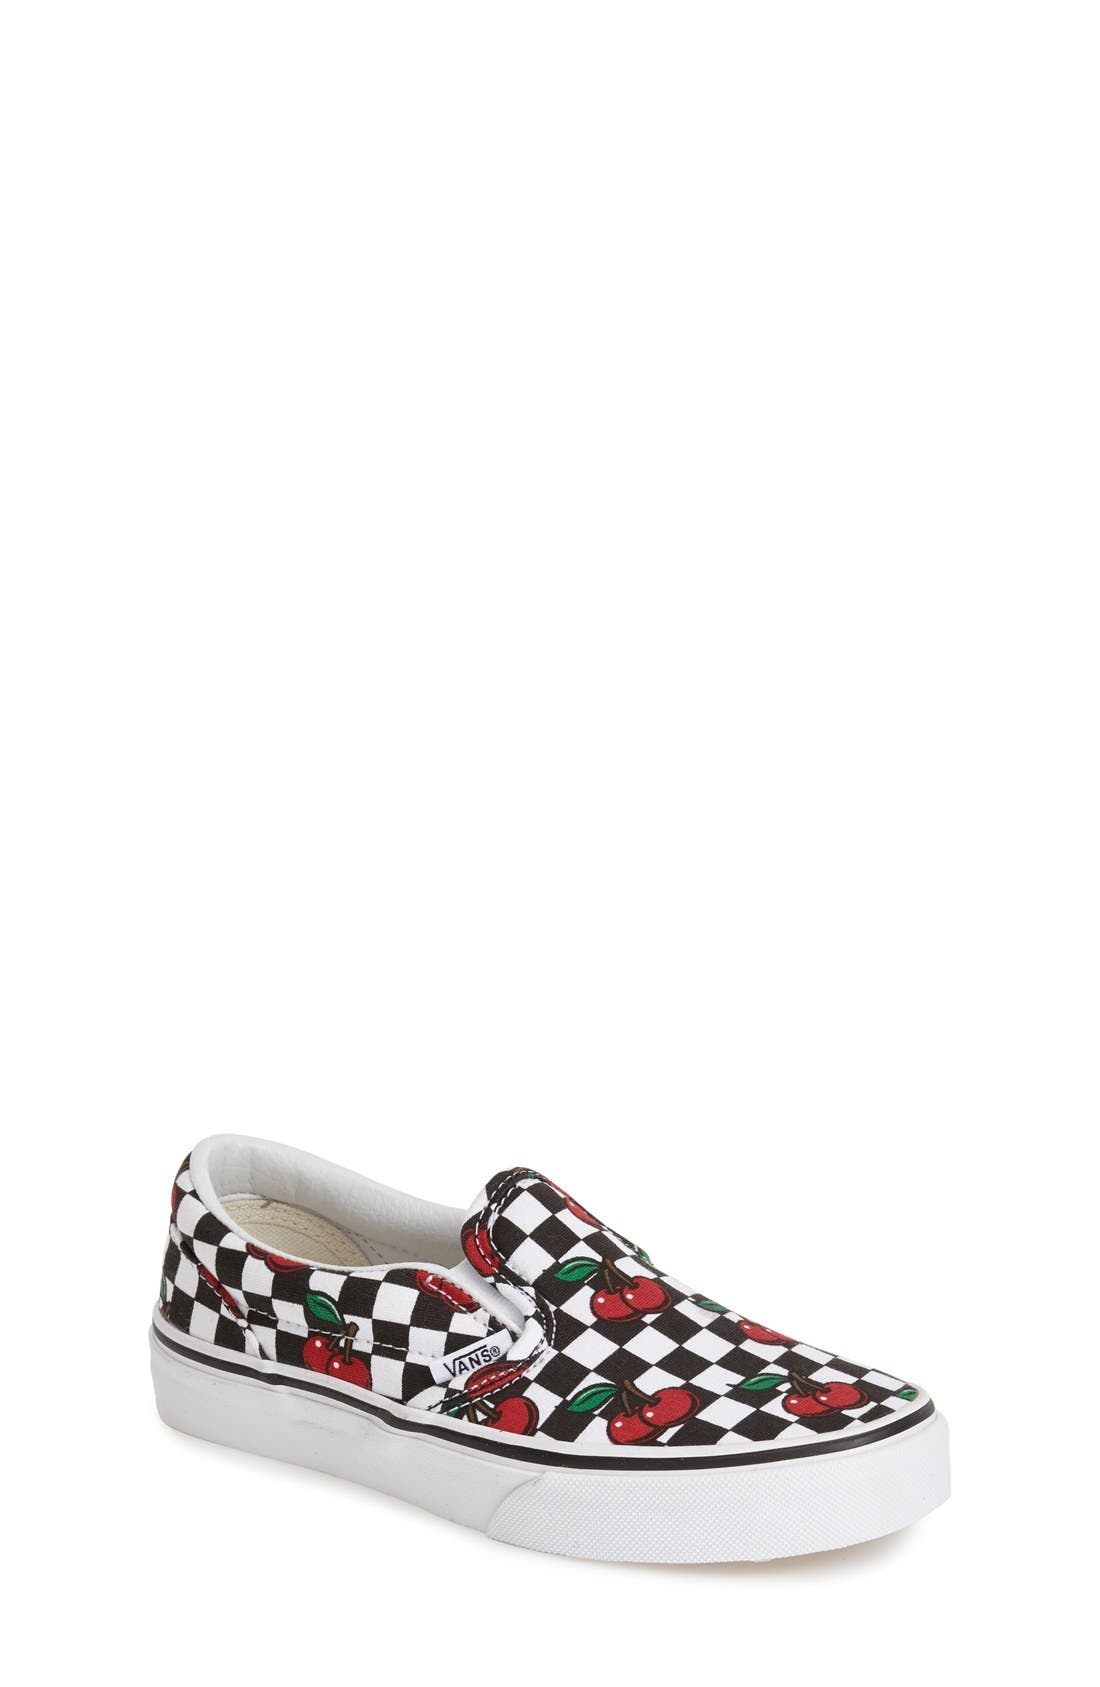 'Classic - Cherry Checkerboard' Slip-On,                             Main thumbnail 1, color,                             001